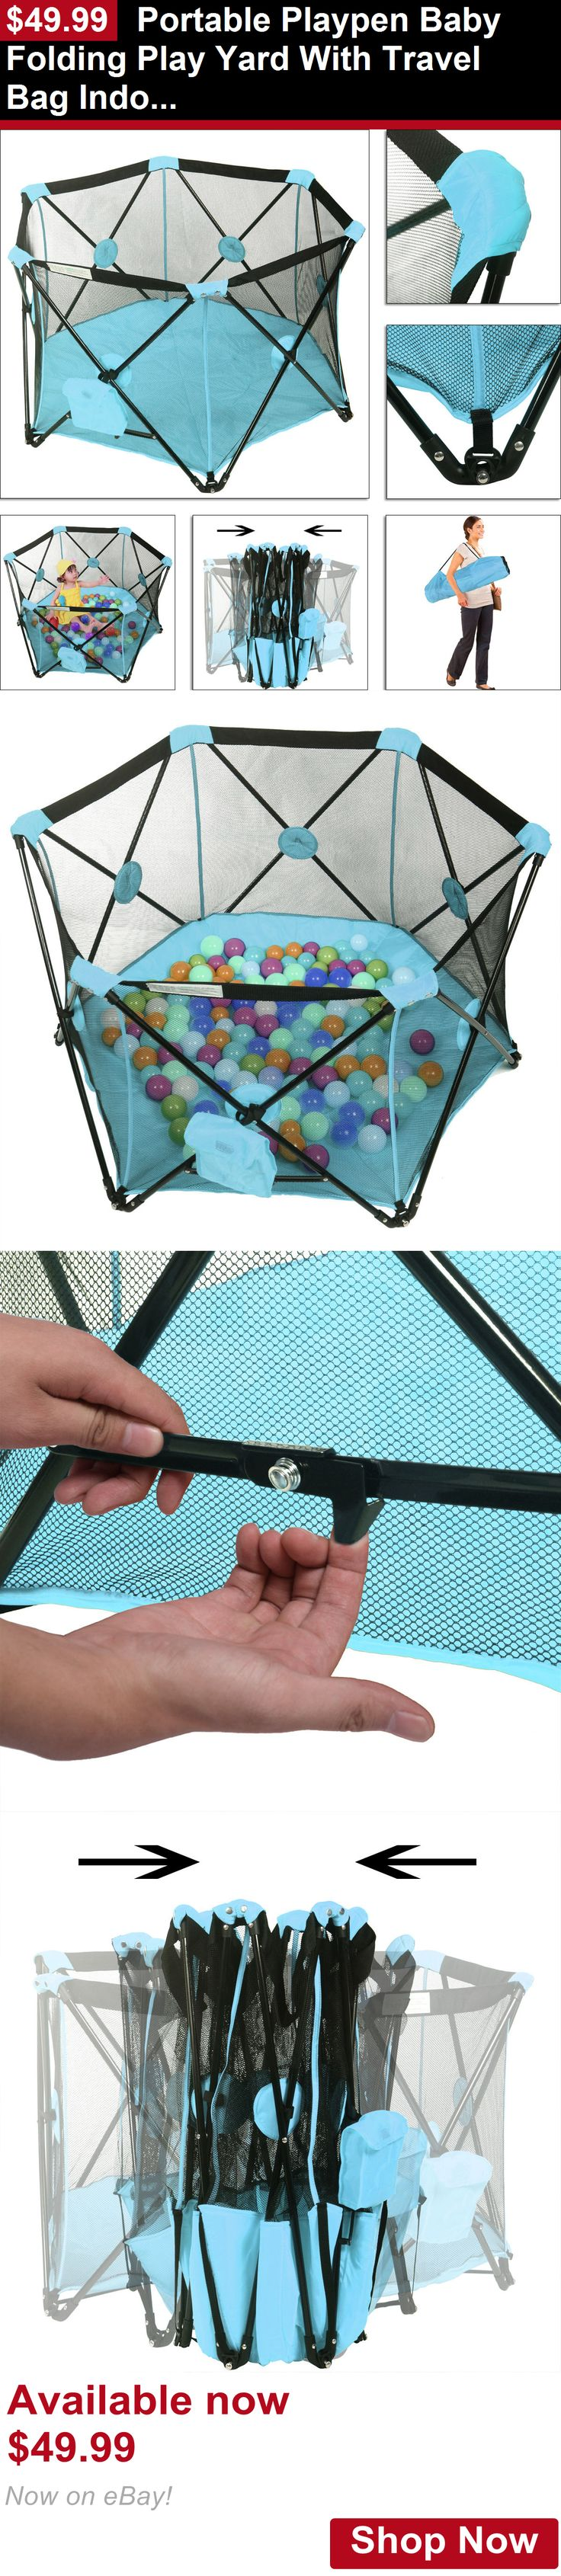 Baby Play pens and play yards: Portable Playpen Baby Folding Play Yard With Travel Bag Indoor Outdoor Blue BUY IT NOW ONLY: $49.99